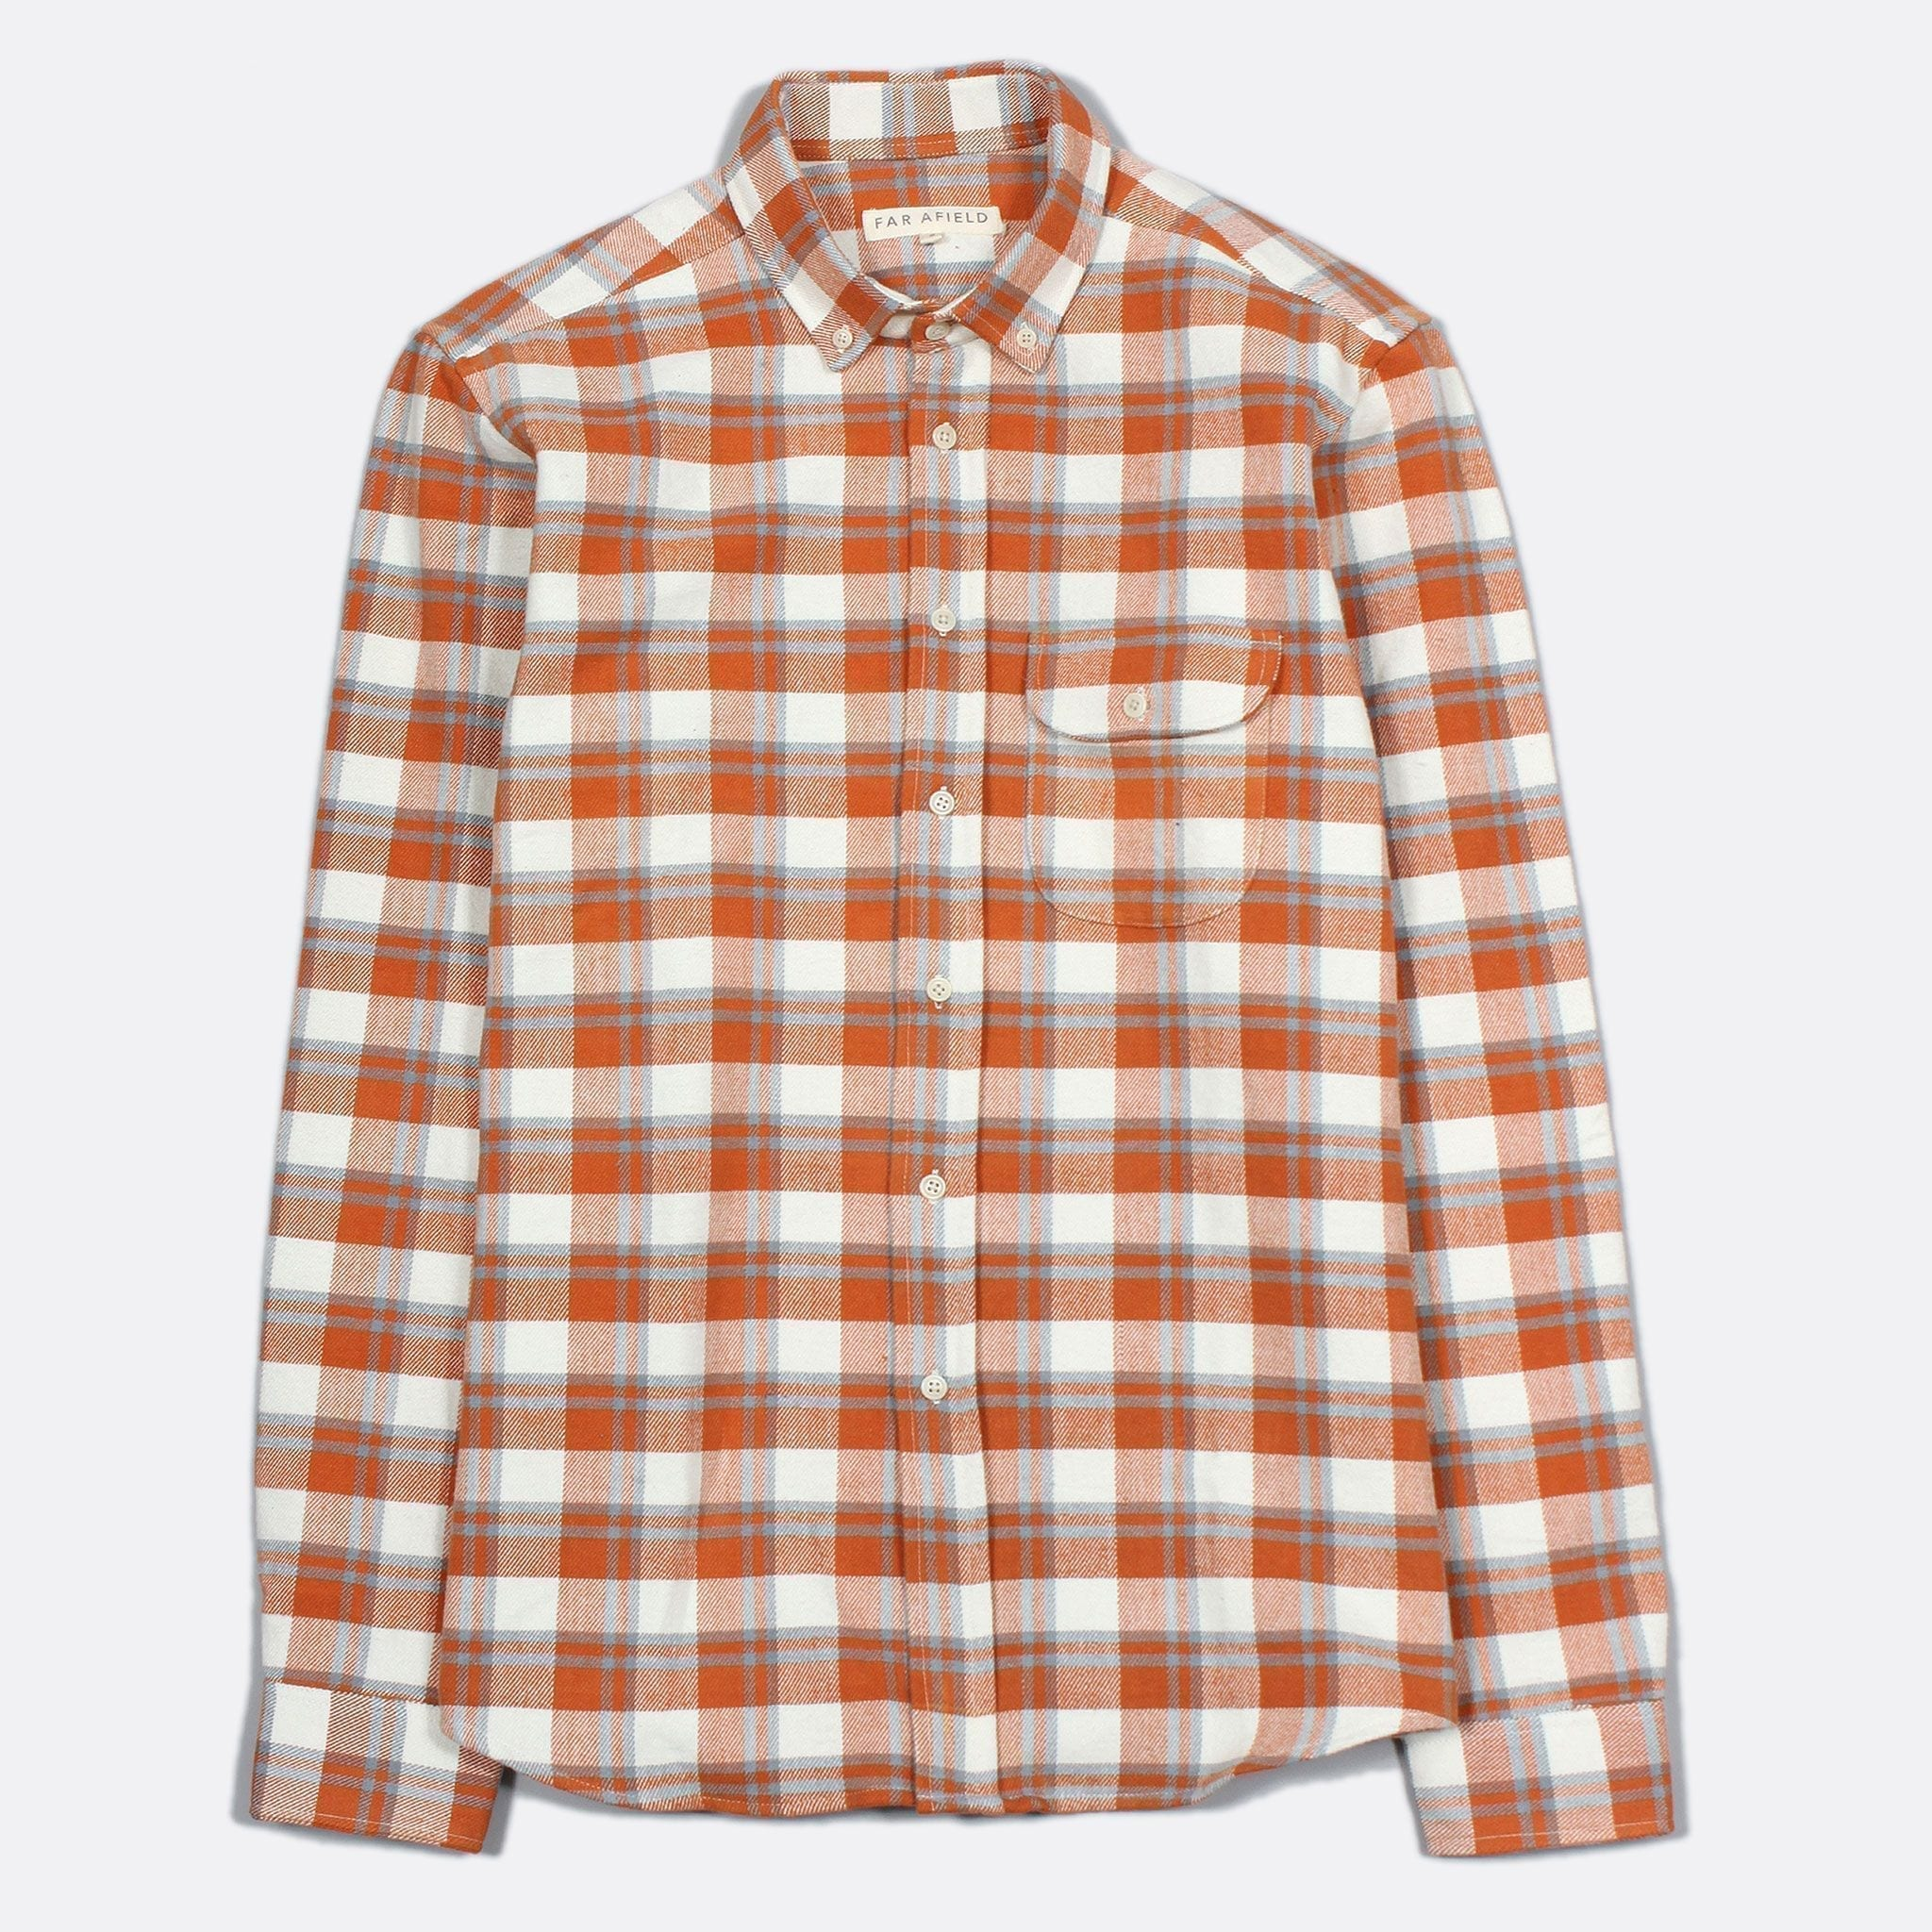 Far Afield Larry Long Sleeve Shirt a Orange/White Work Lumberjack Check Fabric Casual